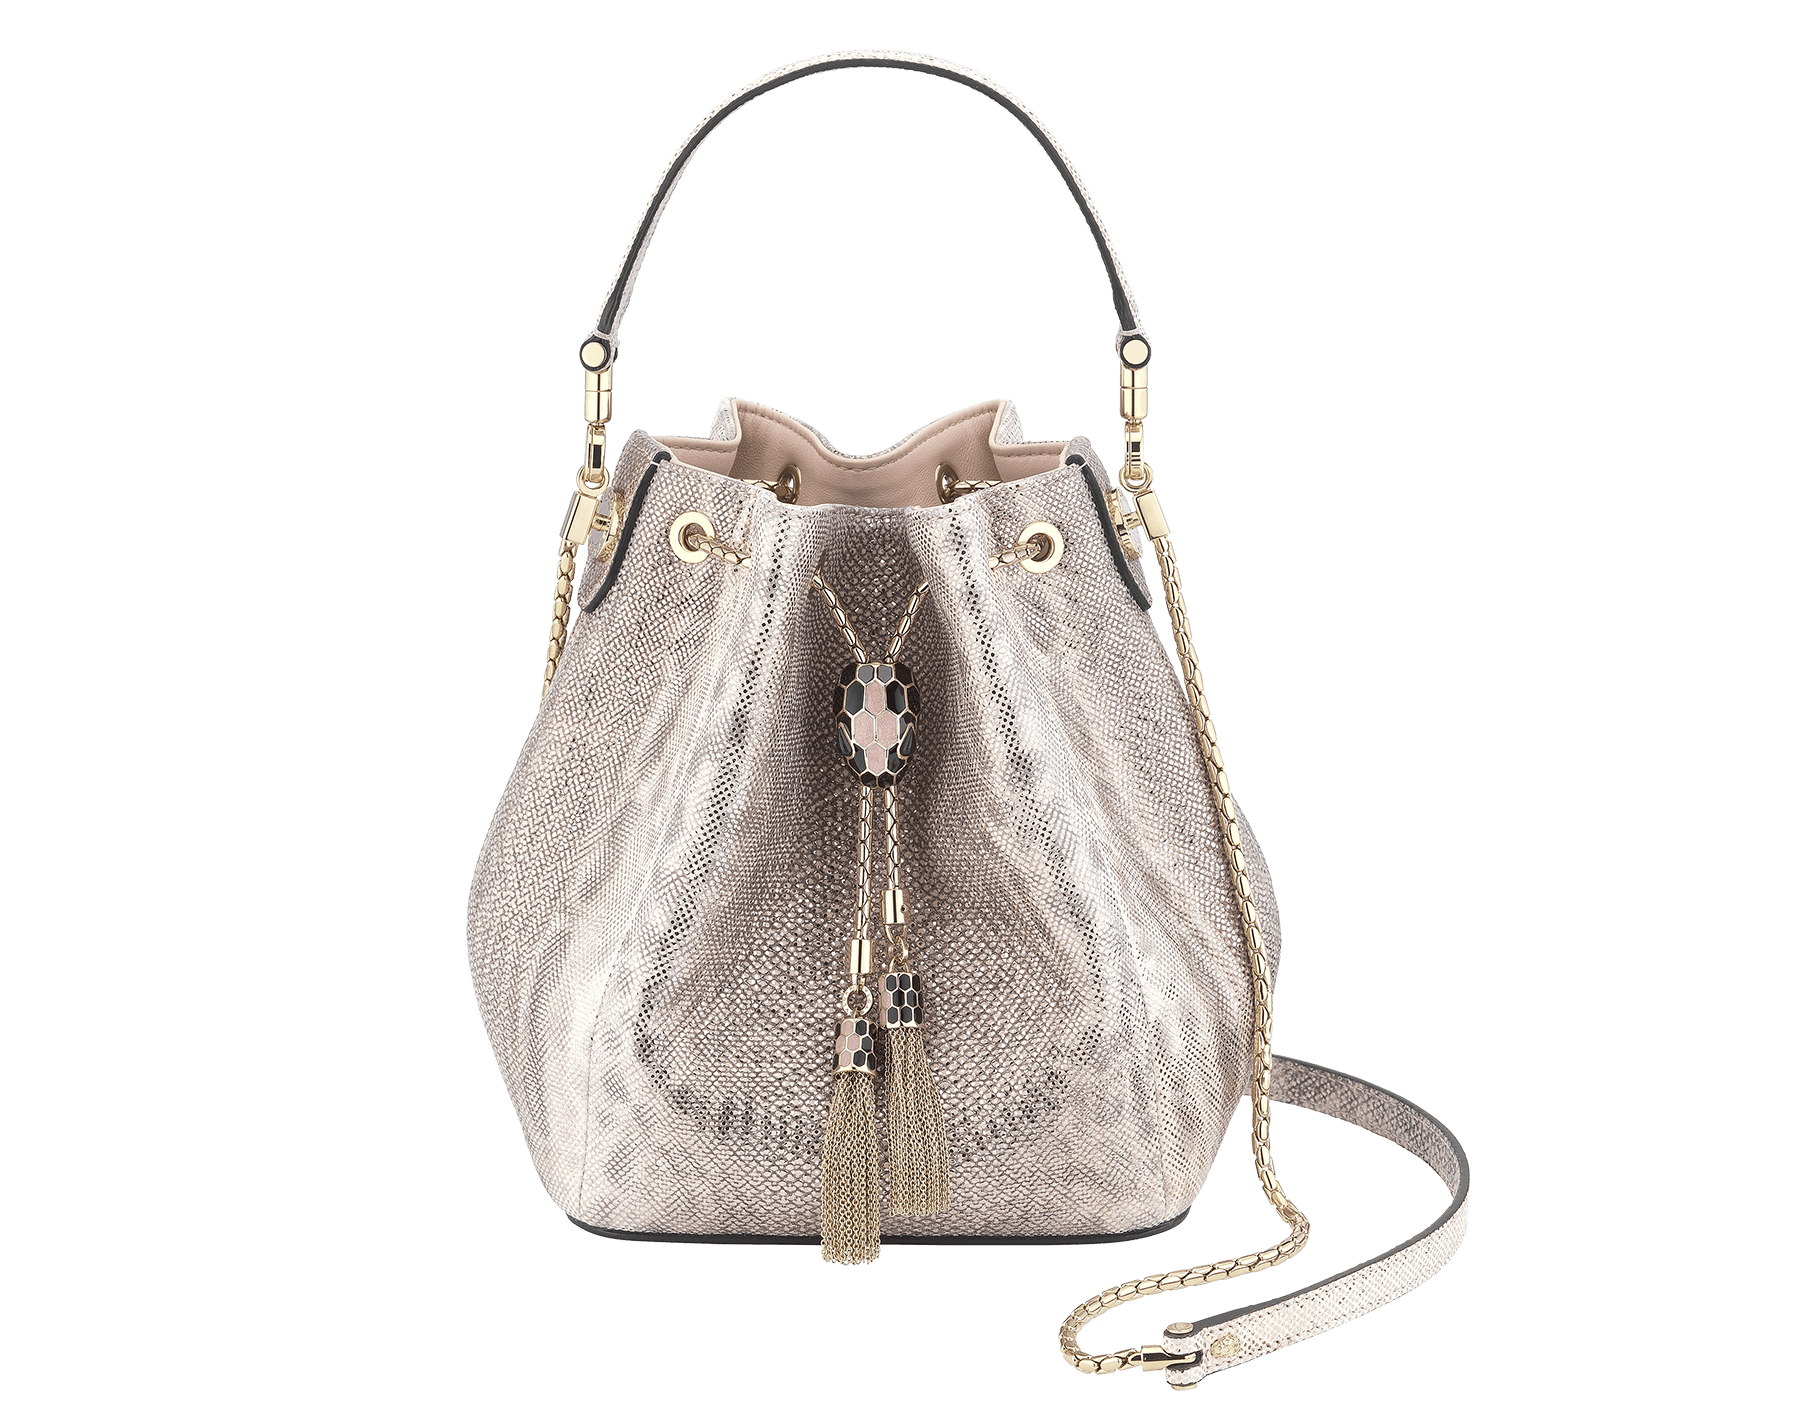 Bucket Serpenti Forever in crystal rose metallic karung skin and crystal rose nappa internal lining. Hardware in light gold plated brass and snakehead closure in black and glitter rose gold enamel, with eyes in black onyx 287614 image 1